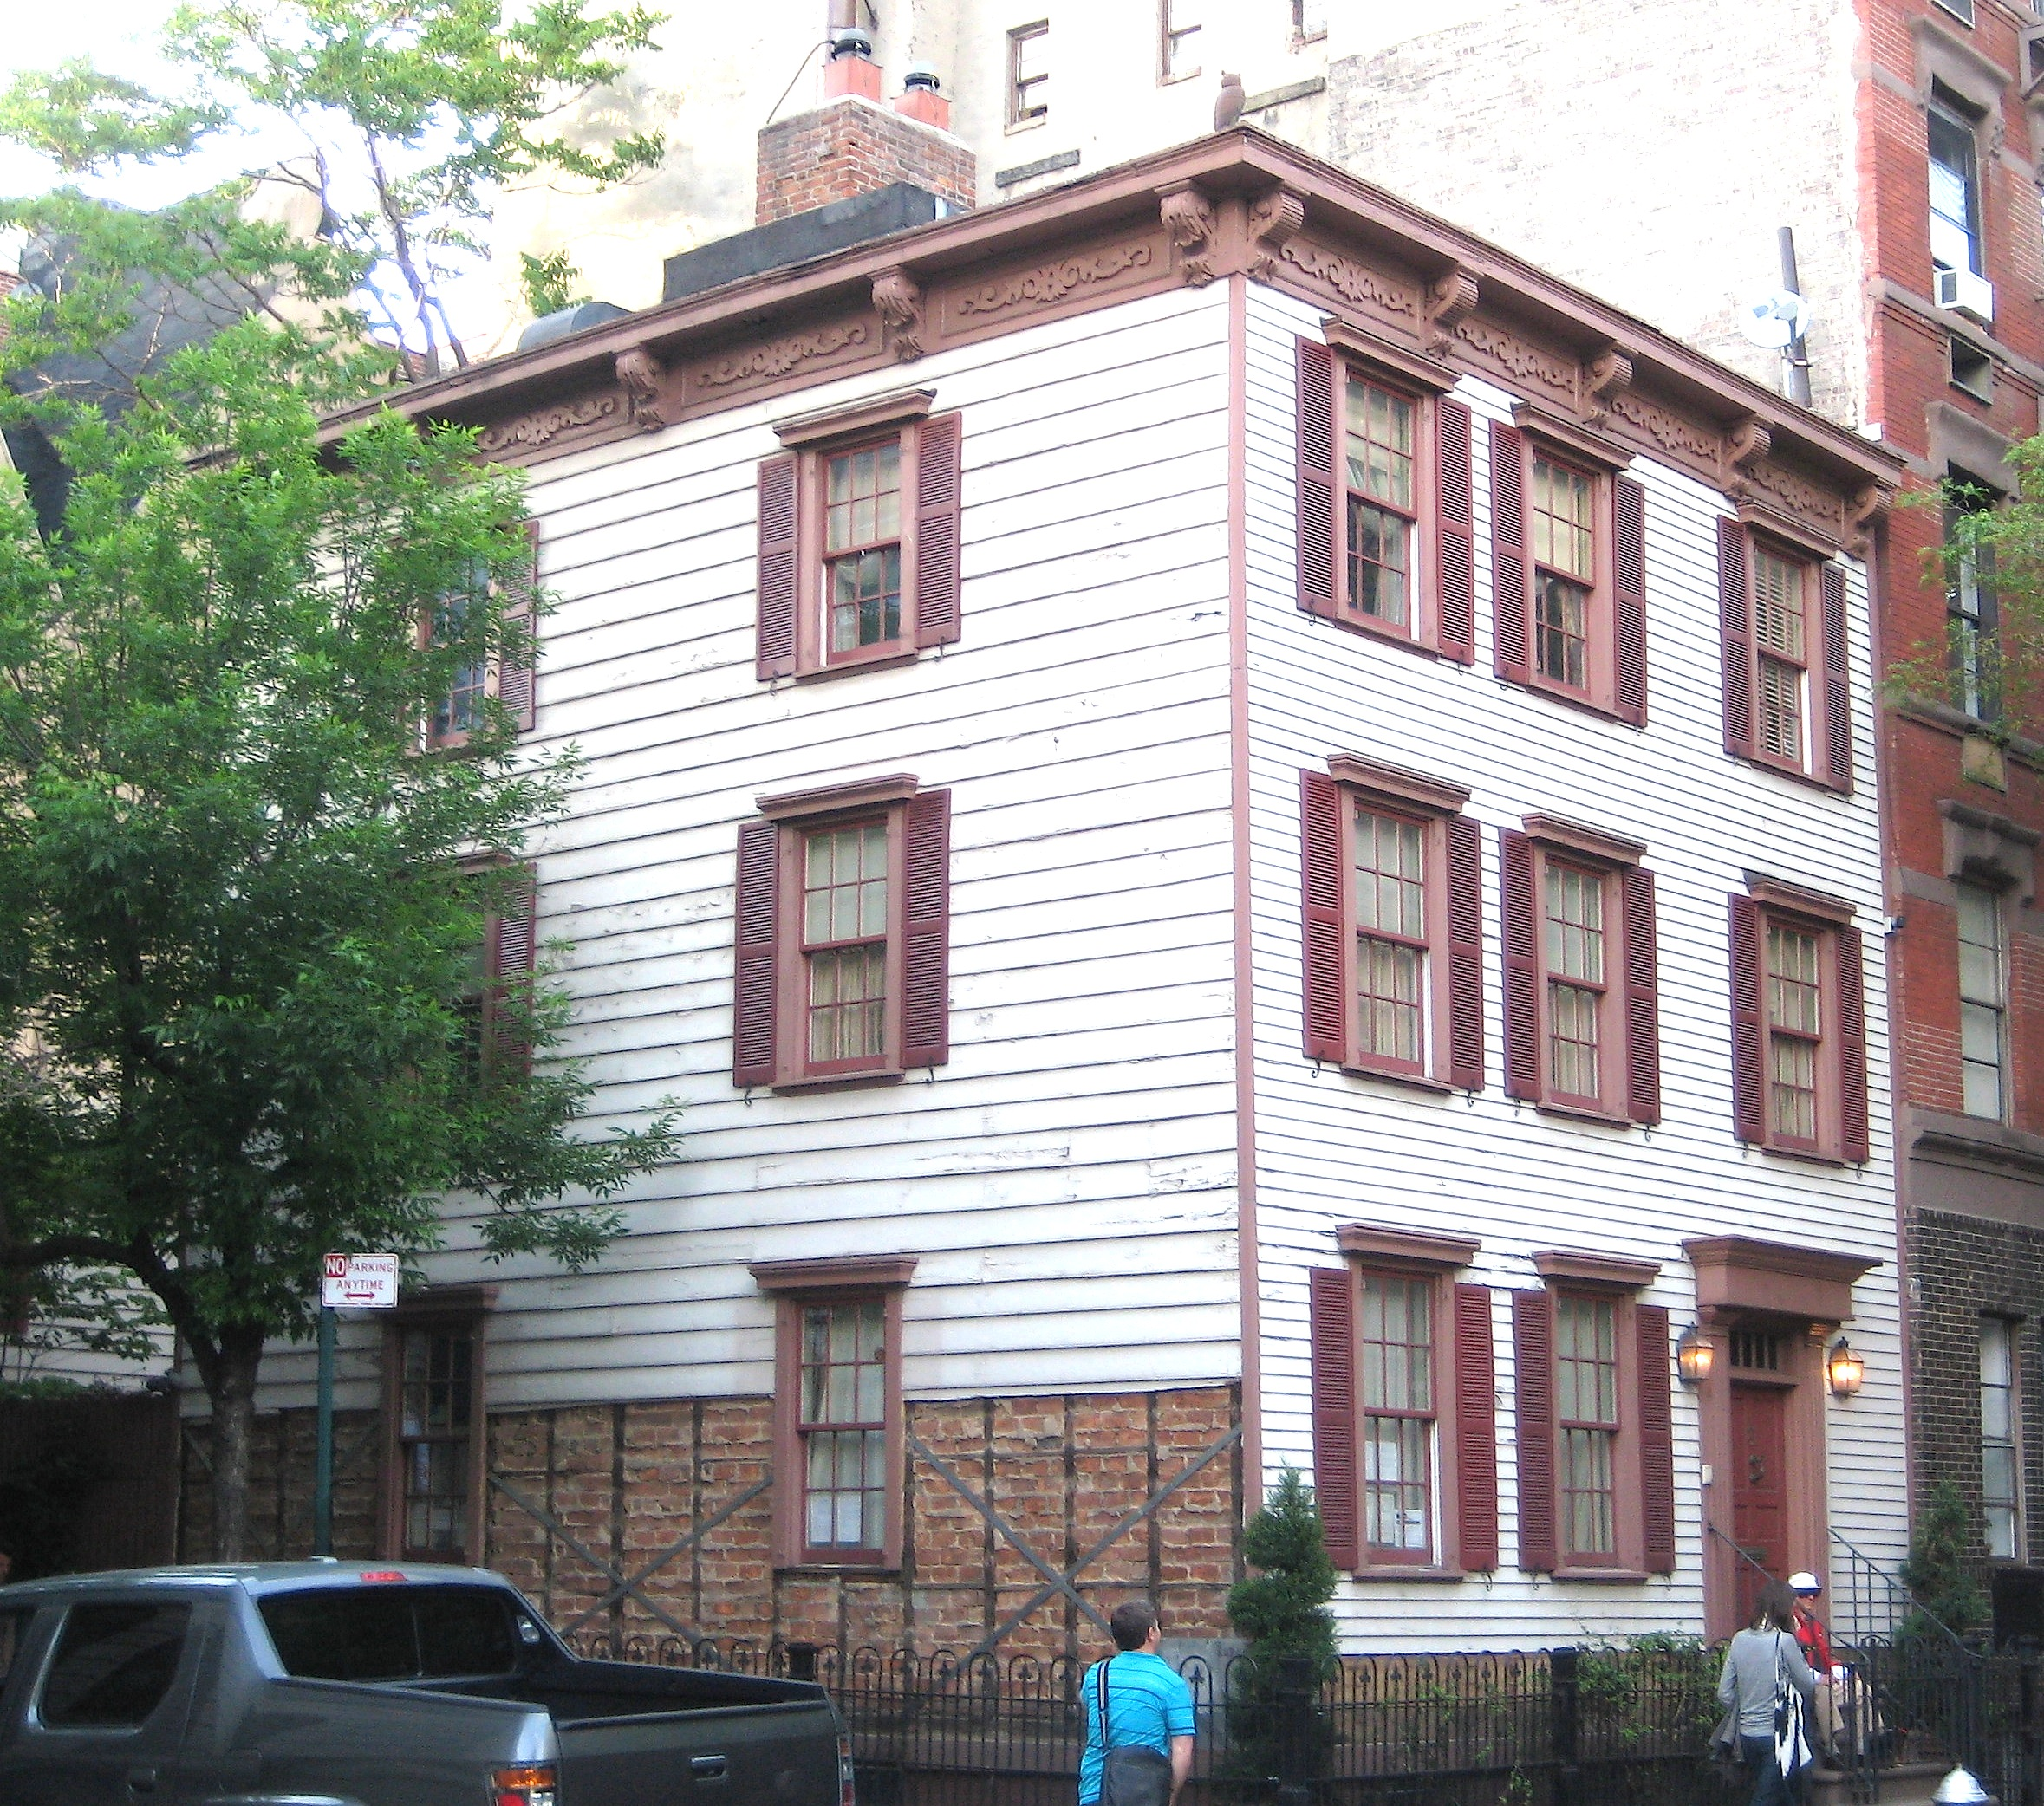 wood-frame houses in New York City | Ephemeral New York